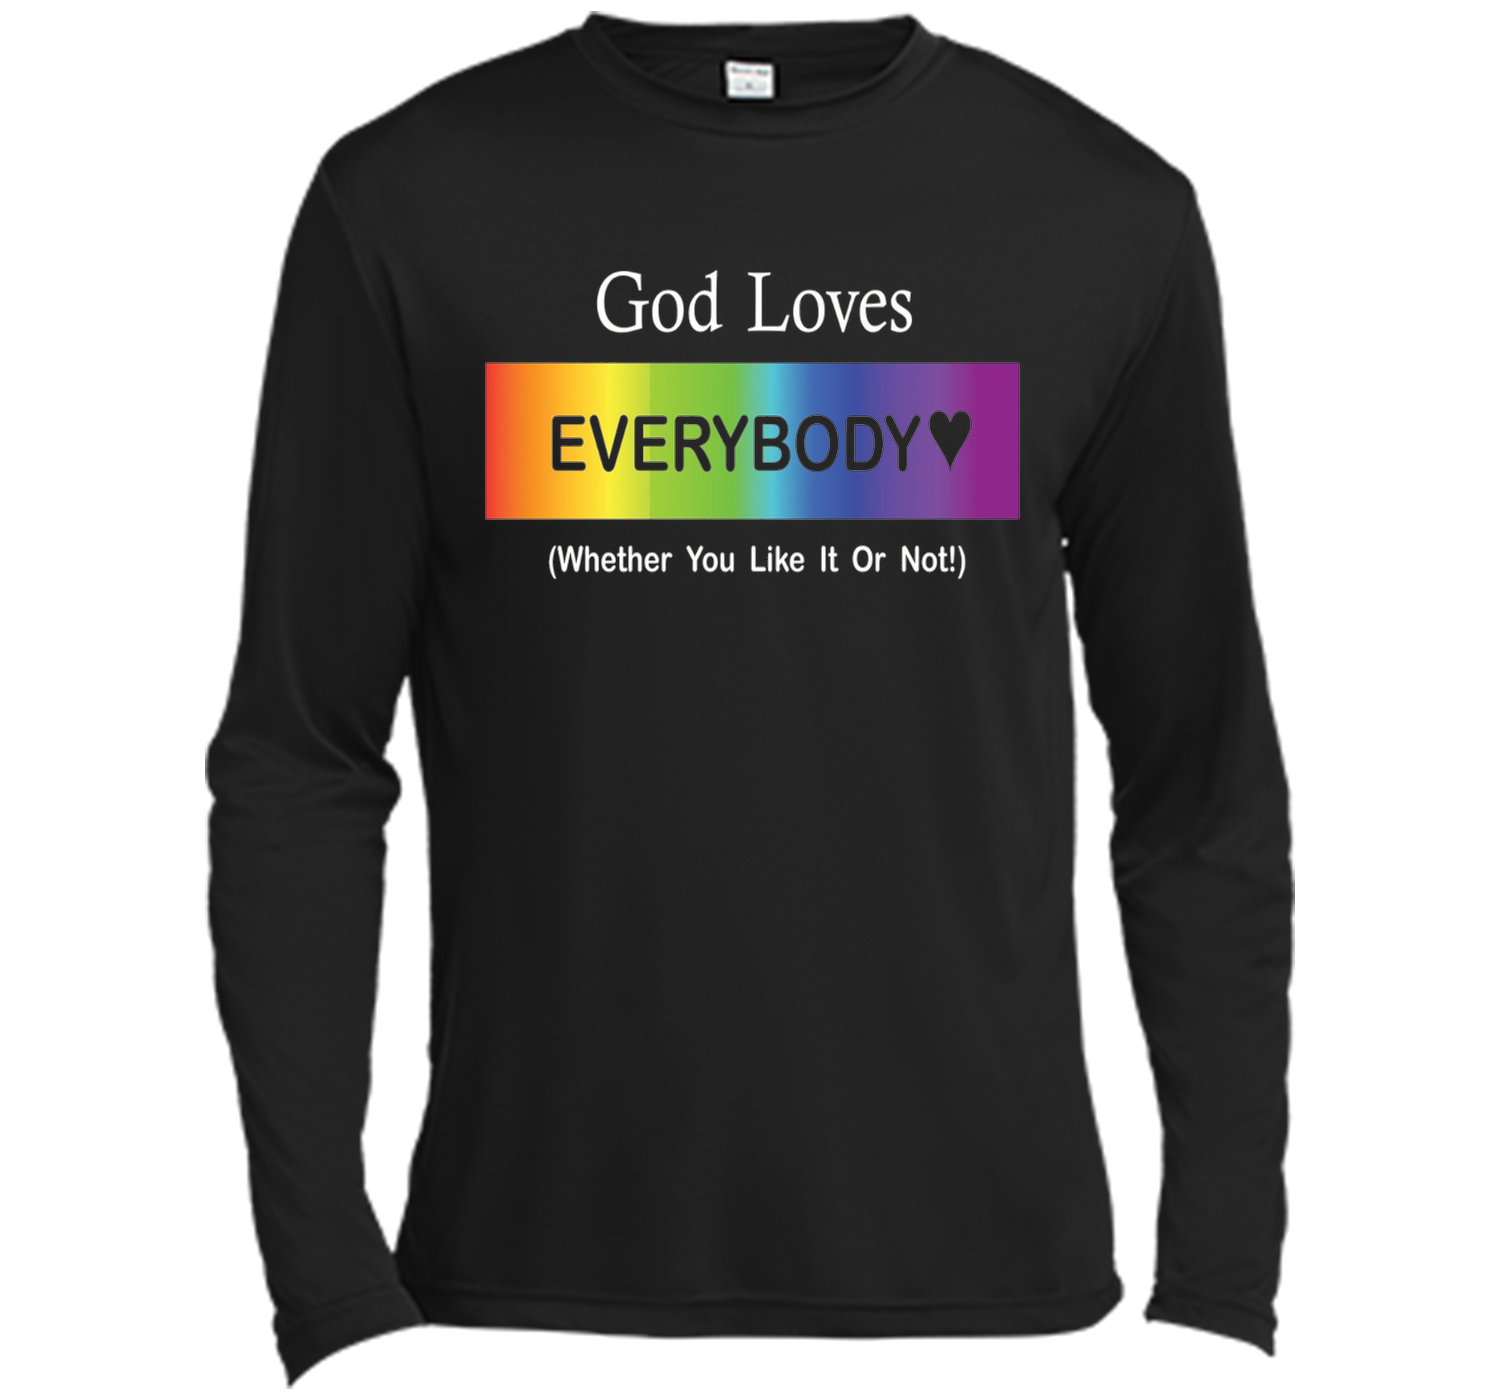 God Loves Everybody (Whether You Like It Or Not!) T shirt cool shirt